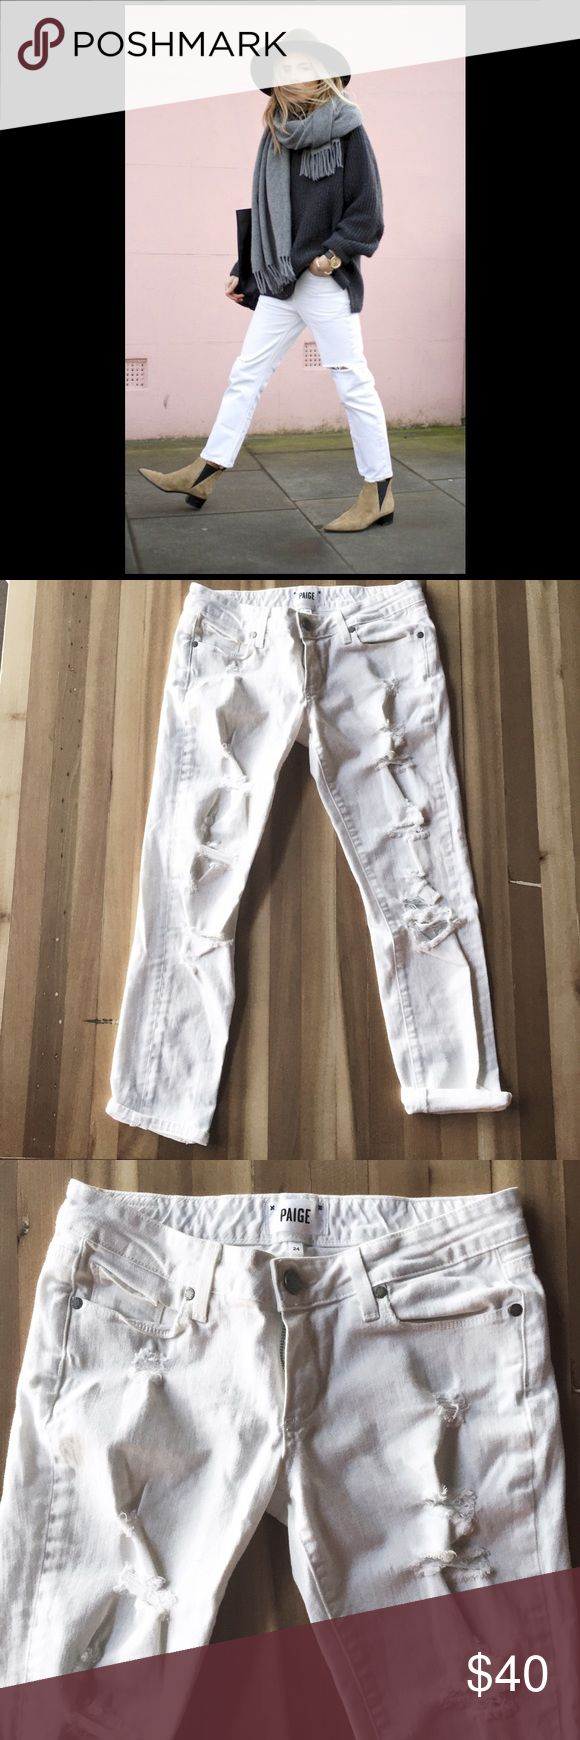 "✖️SALE✖️Paige 'Jimmy Jimmy' Jean Distressed winter white boyfriend denim, measurements: waist across 14"", rise 7.5"", inseam 26"", first pic for styling purposes only Paige Jeans Jeans Boyfriend"